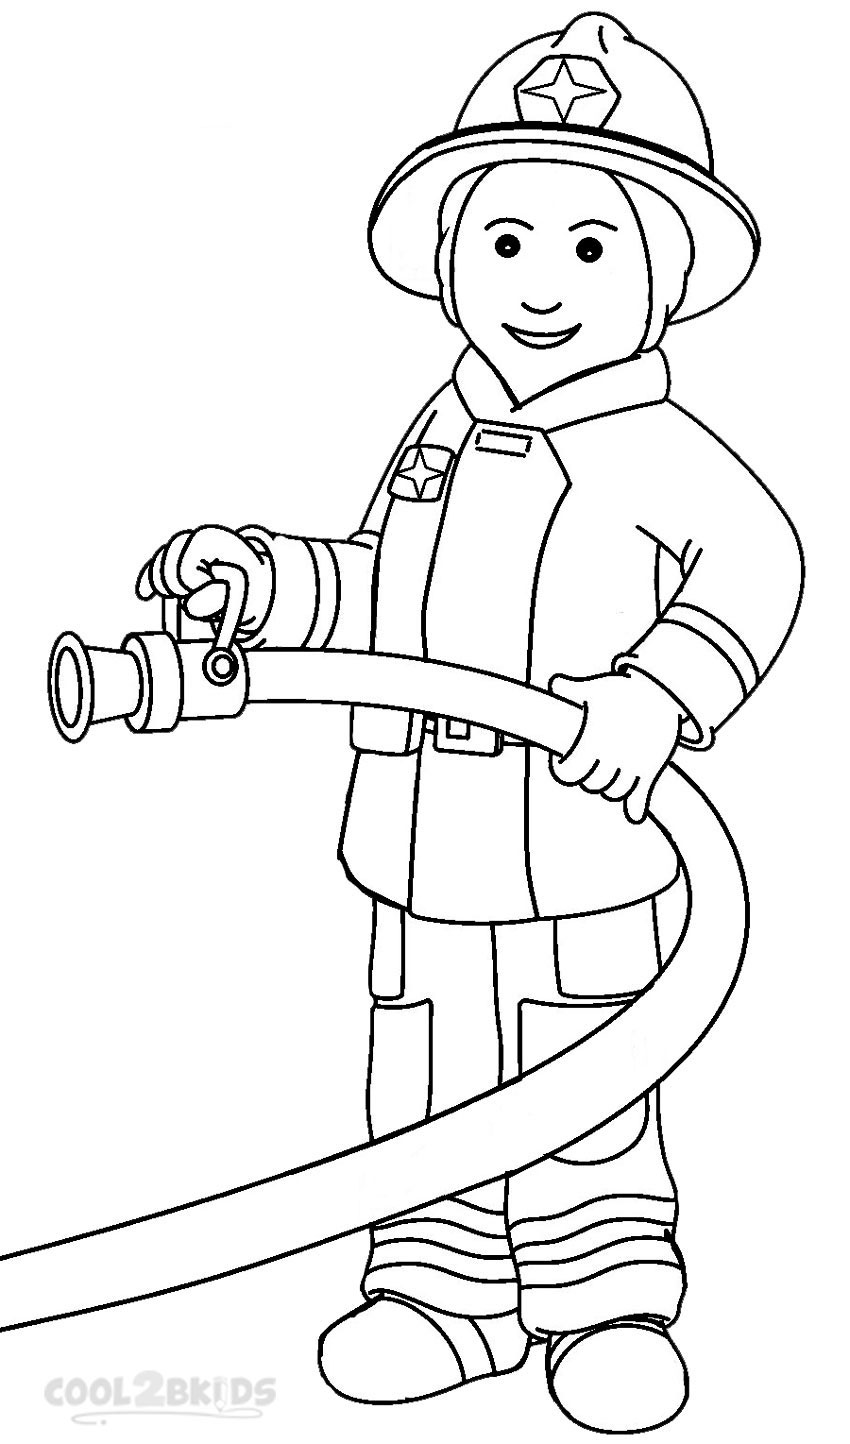 Free Printable Fireman Coloring Pages | Cool2bKids